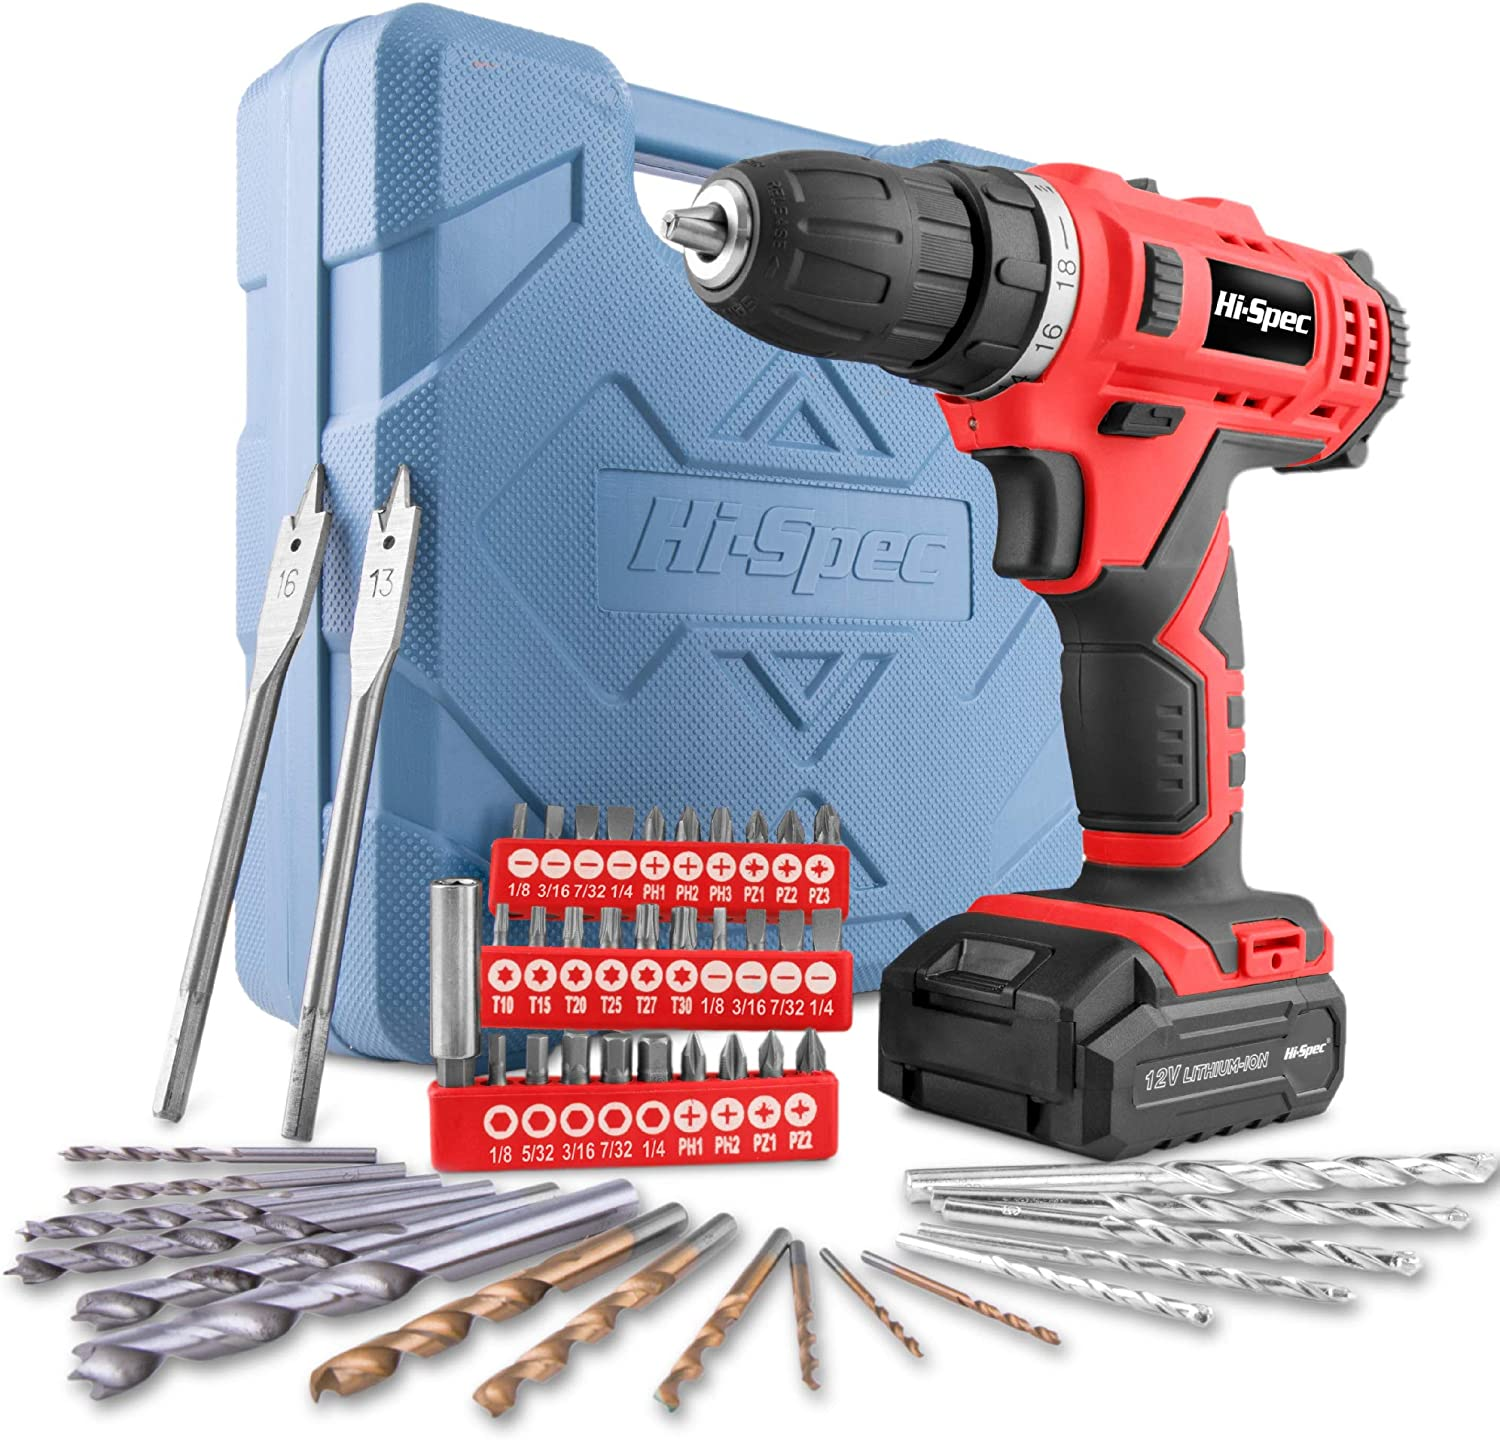 Hi-Spec 12V 1300mAh Li-ion Cordless Drill Driver, Twin Gear Speed with 20Nm Torque. Variable Speed Switch & LED Light With 49 Piece Drill & Screwdriver Bit Accessory Set in a Carry Case (Red)